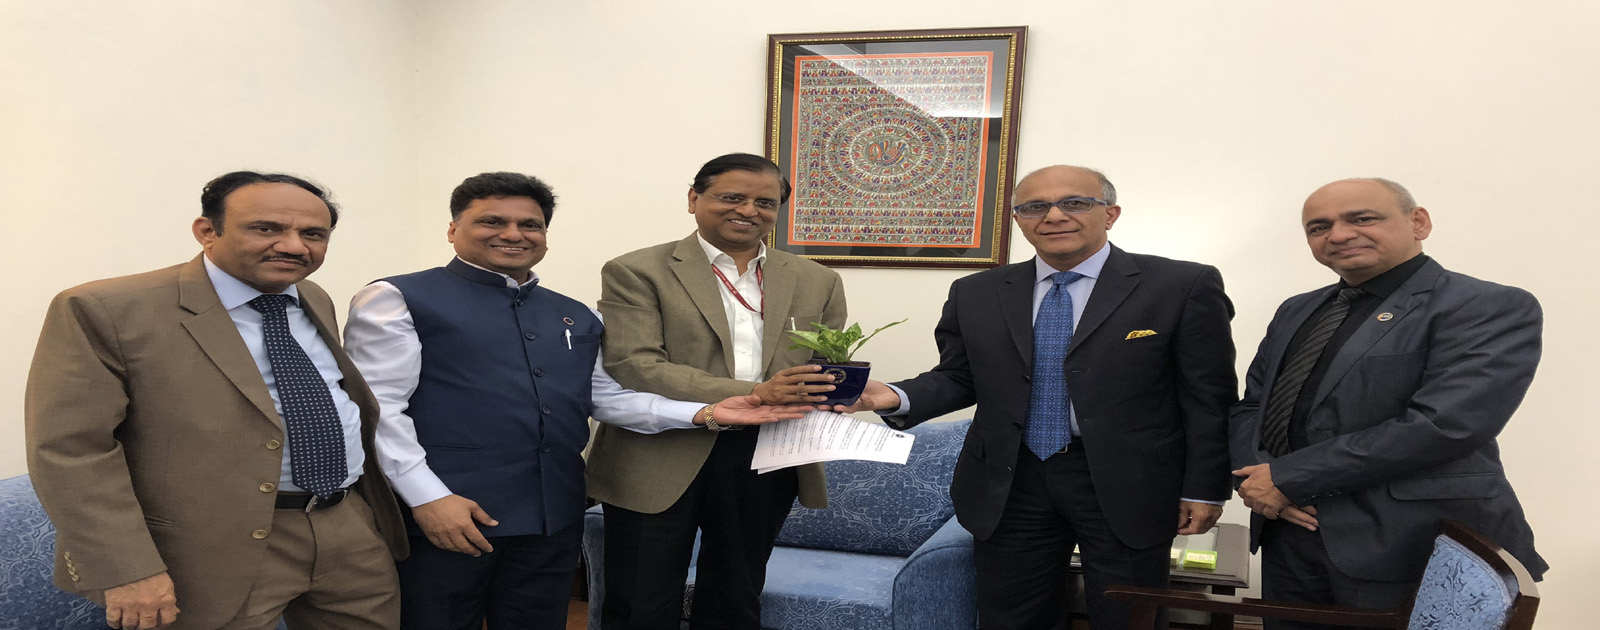 Call on Meeting with Shri Subhash Chandra Garg, Secretary, Department of Economic Affairs, Ministry of Finance